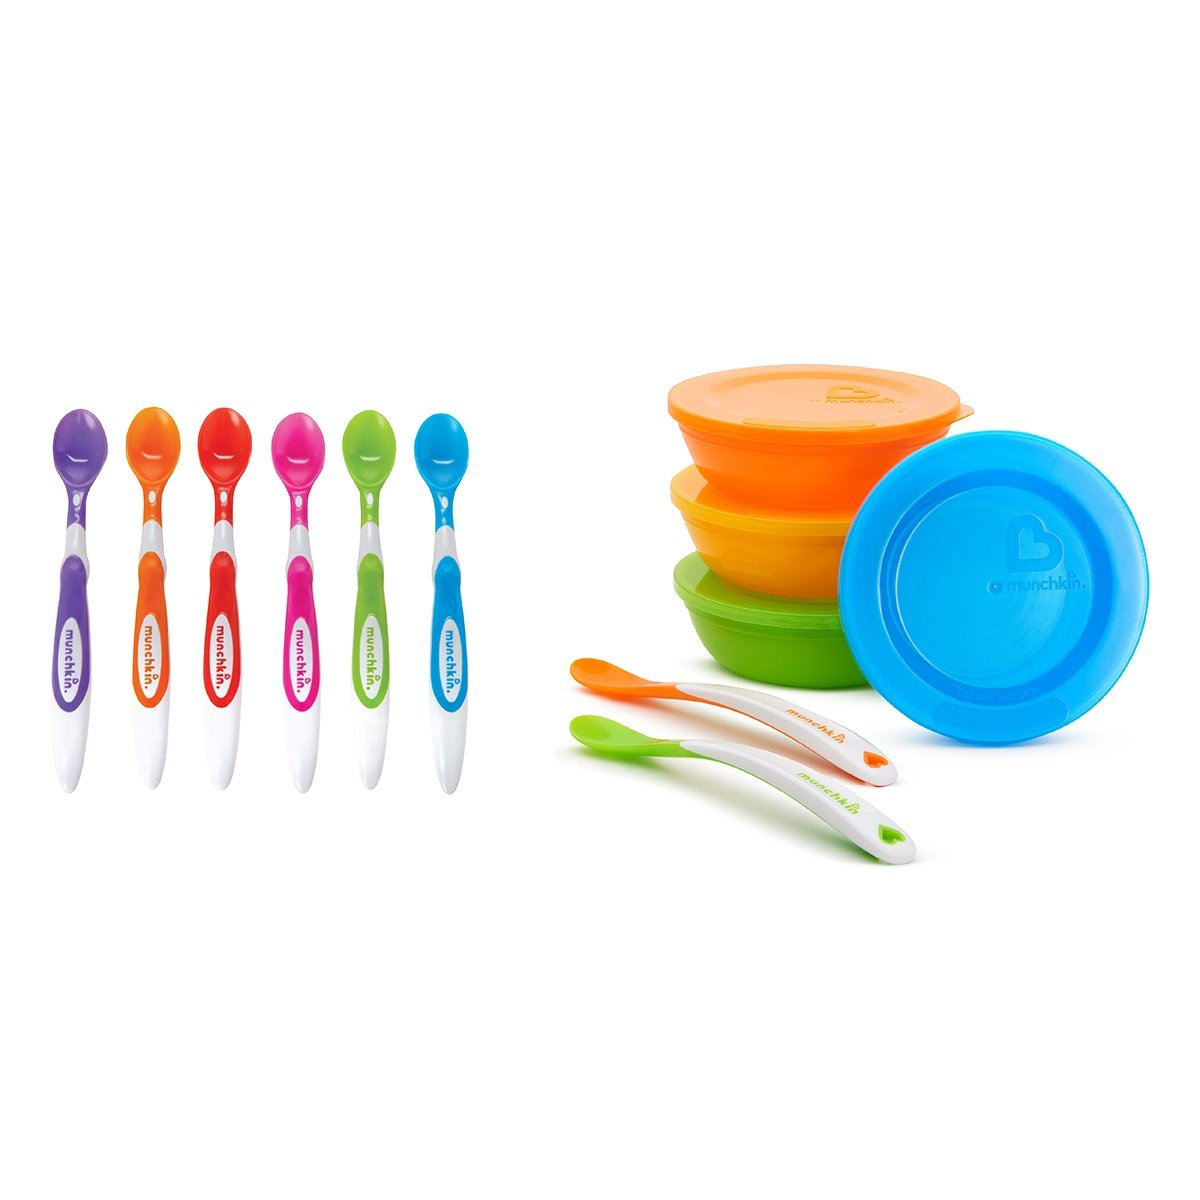 Munchkin Love a Bowls, 10 Piece Bowl and Spoon Set with Soft Tip Infant Spoons, Multi-Coloured, Pack of 6